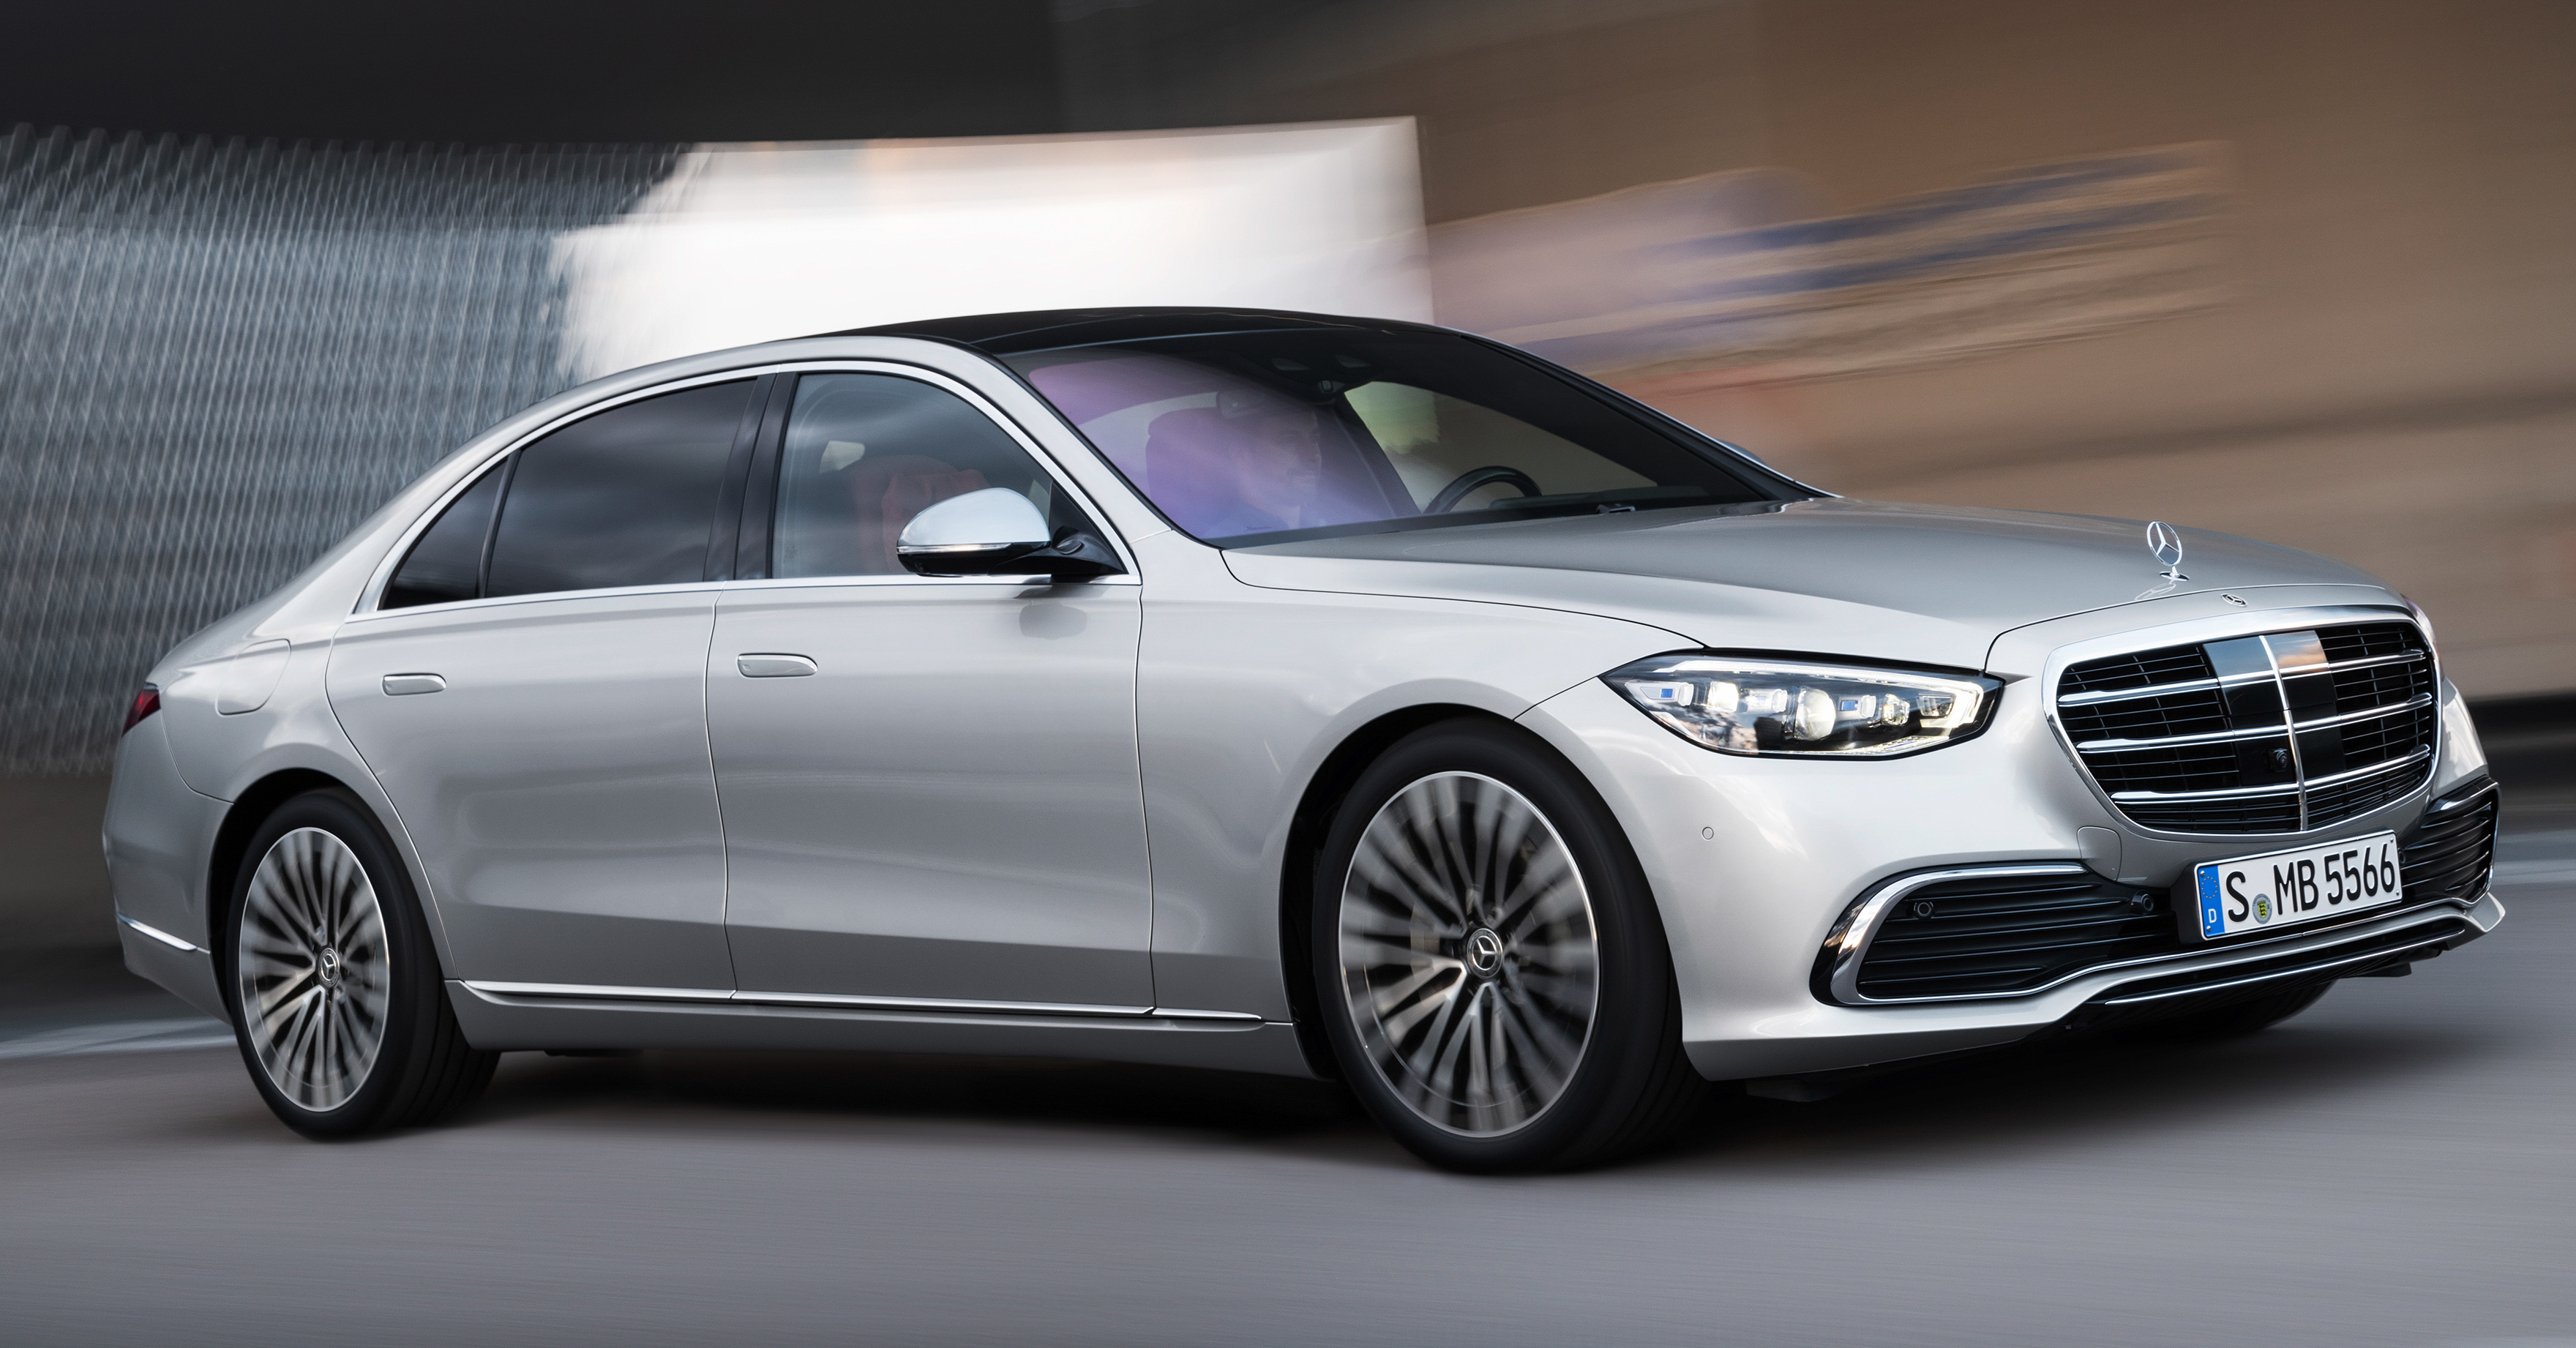 2021 Mercedes-Benz S-Class revealed - W223 to get ...